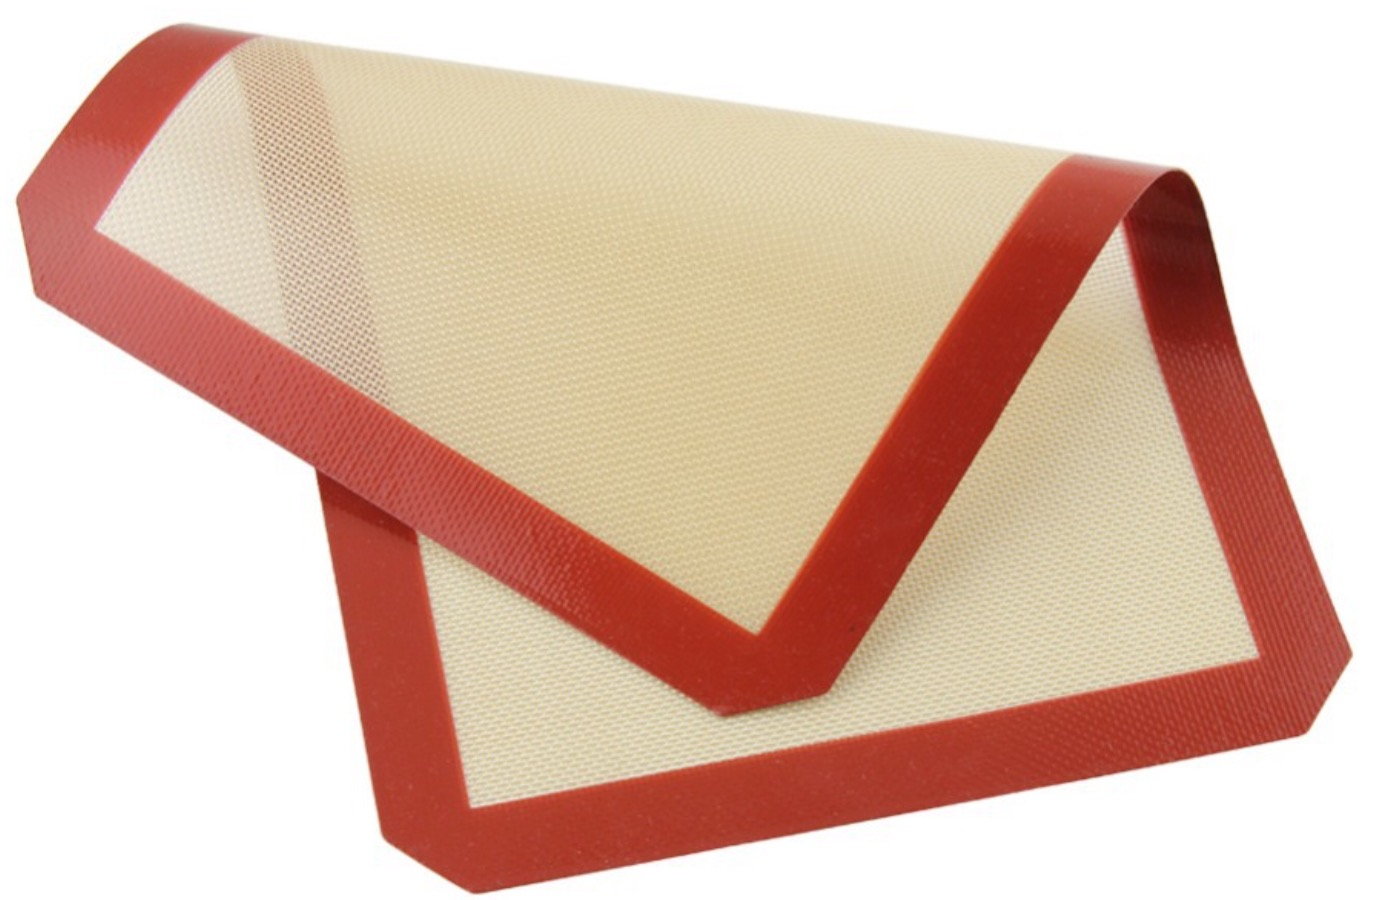 Silpat Mat Non Stick Mat Set Of 2 Mats Baking Mat